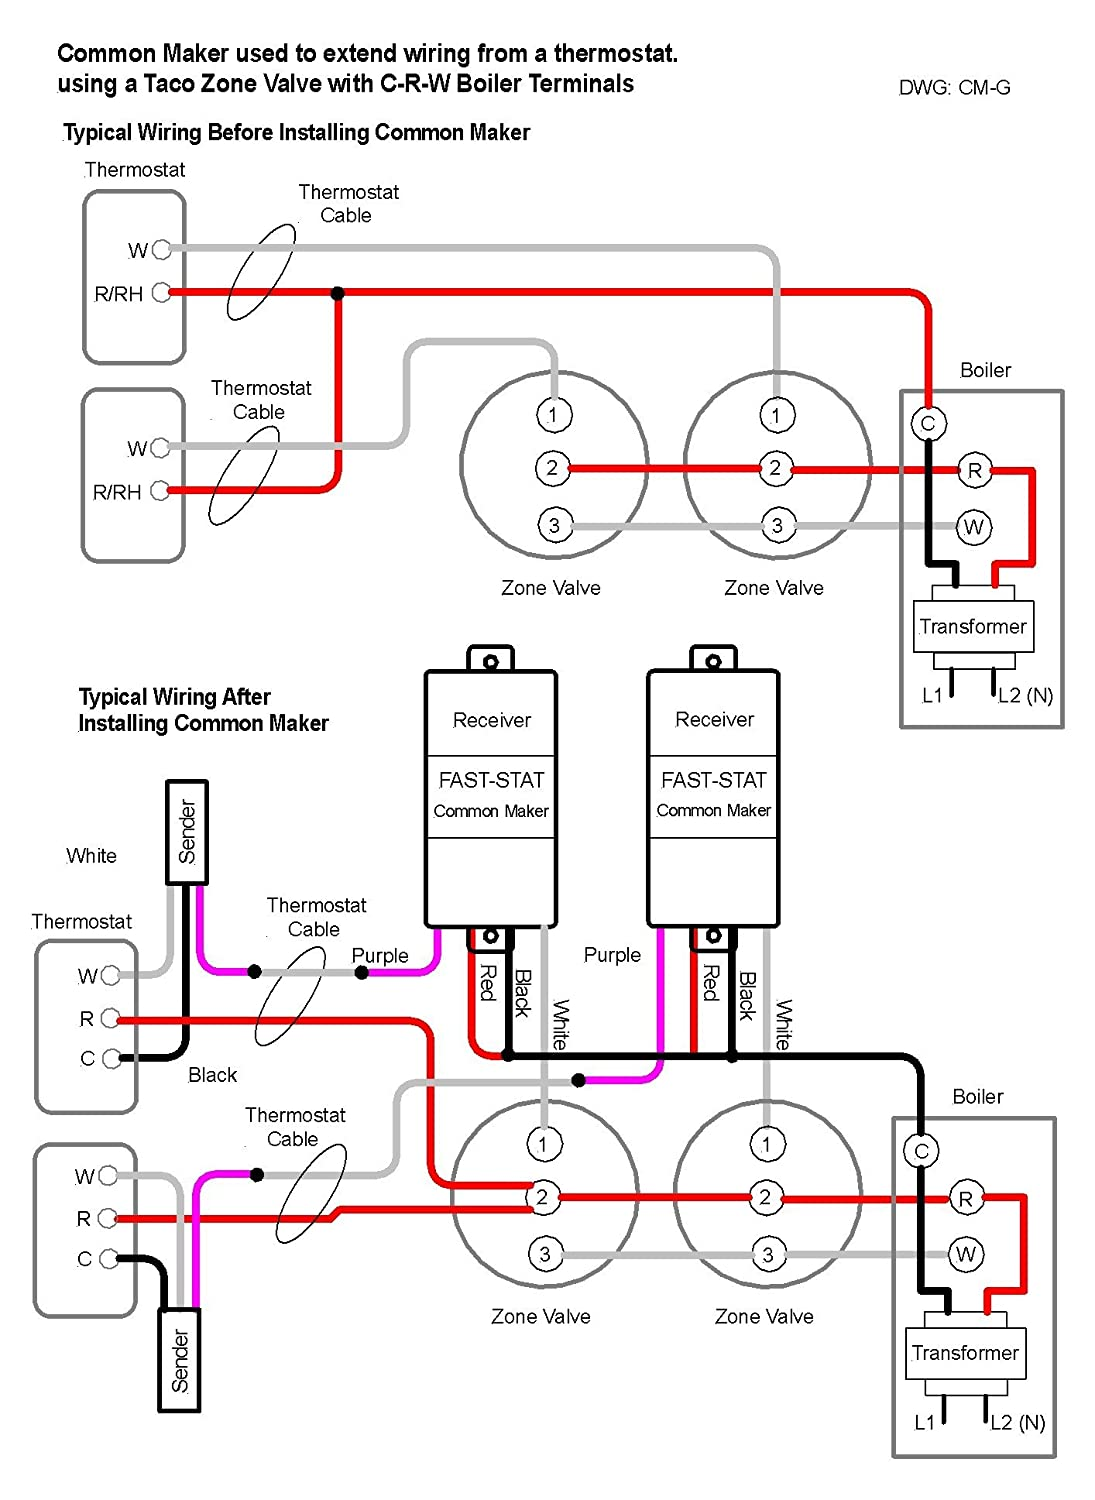 Fast Stat Common Maker Wiring Diagram 37 Images Taco Aquastat Control Schematic 890 Woo Sl1500 Thermostat Wire Extender Adds A